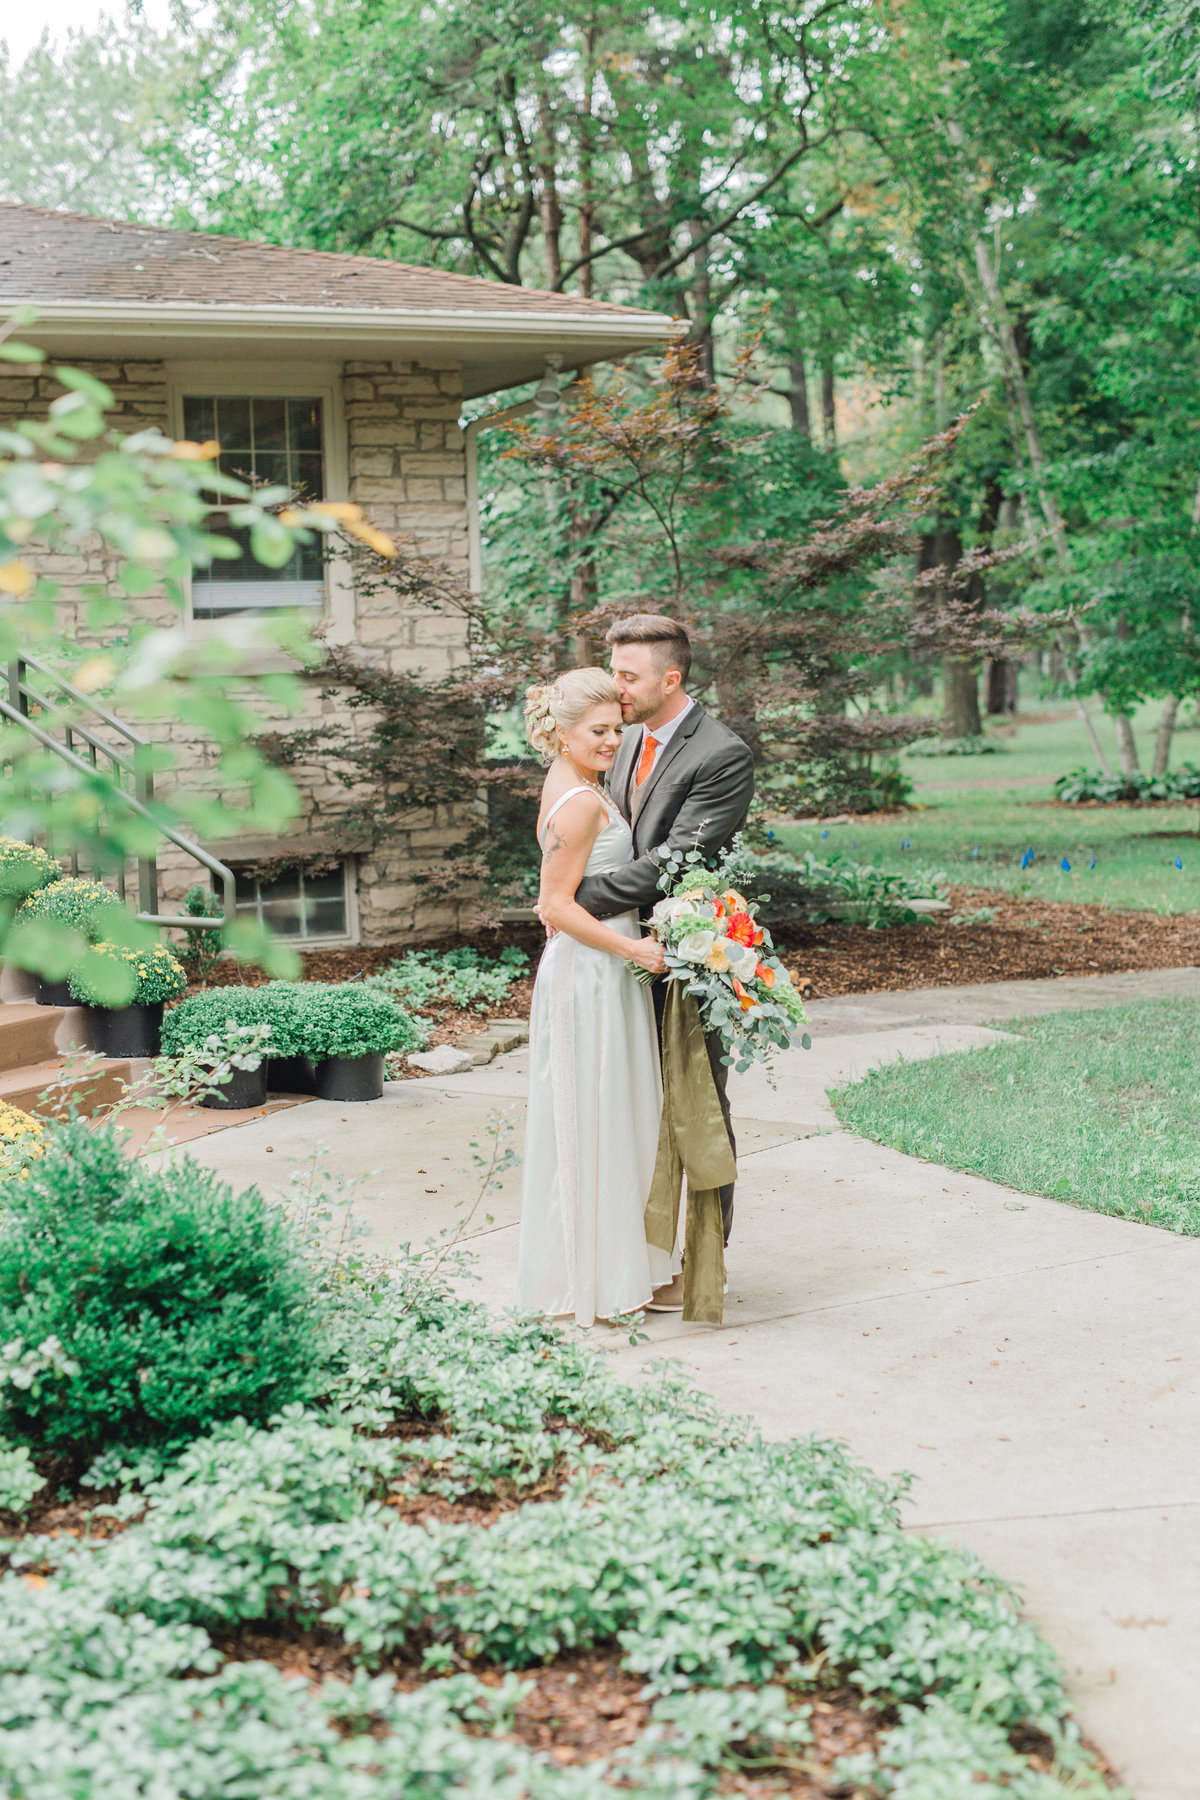 Ned-Ashton-House-Wedding-Ellen+Mack-3953